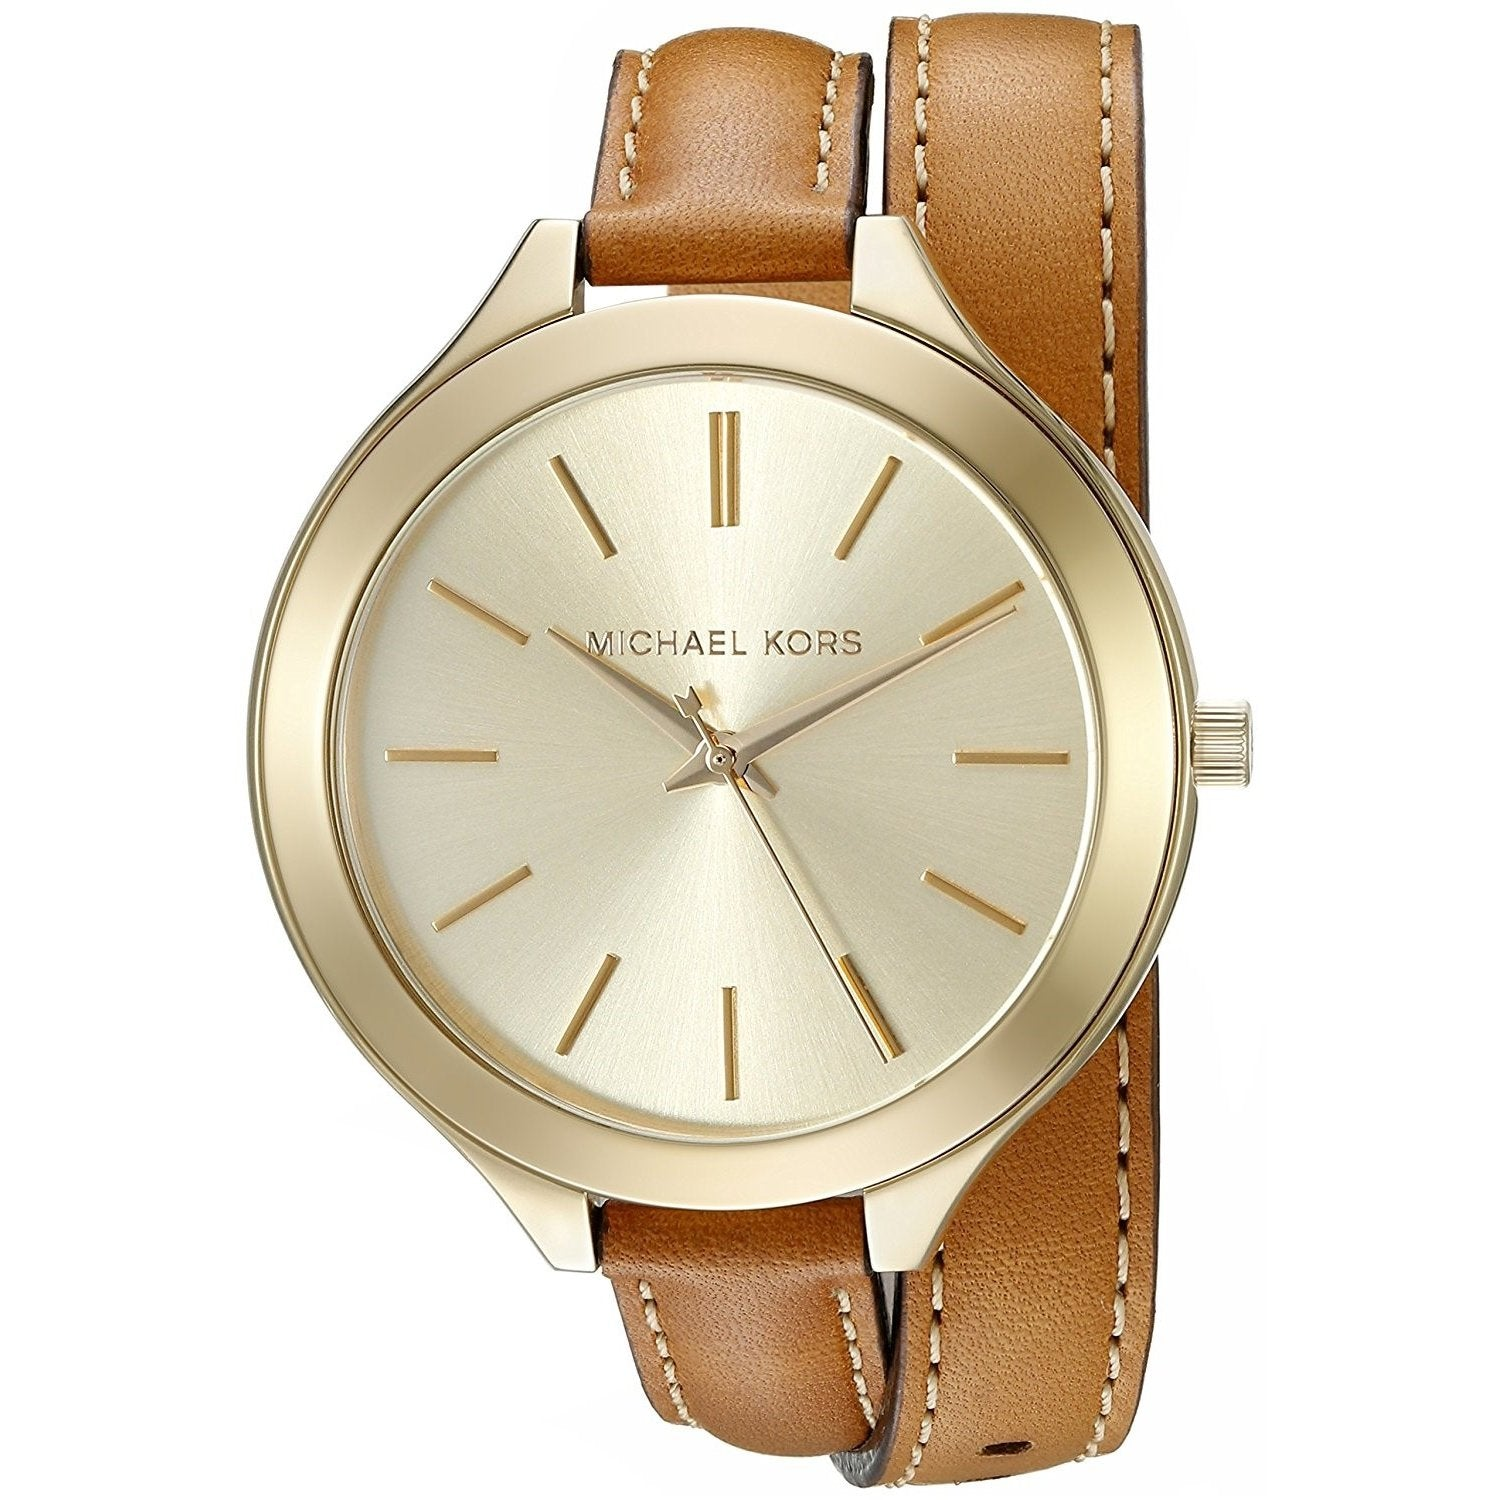 e78014093b15 Michael Kors Women s MK2256  Slim Runway  Brown Leather Watch ...